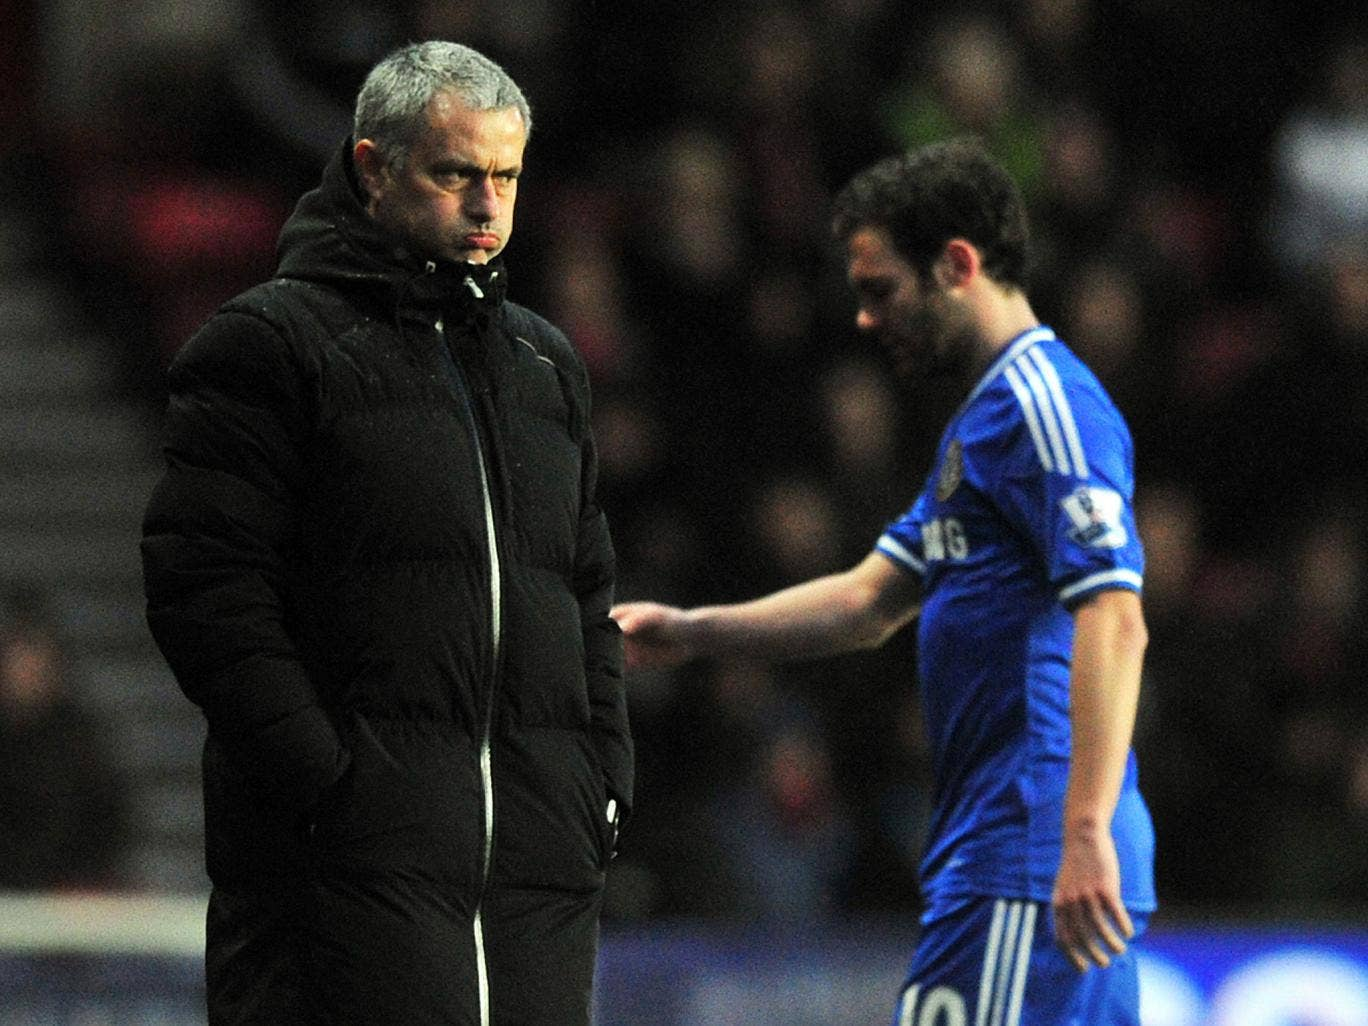 Jose Mourinho and Juan Mata avoid making eye contact after the latter is substituted during the 3-0 victory over Southampton